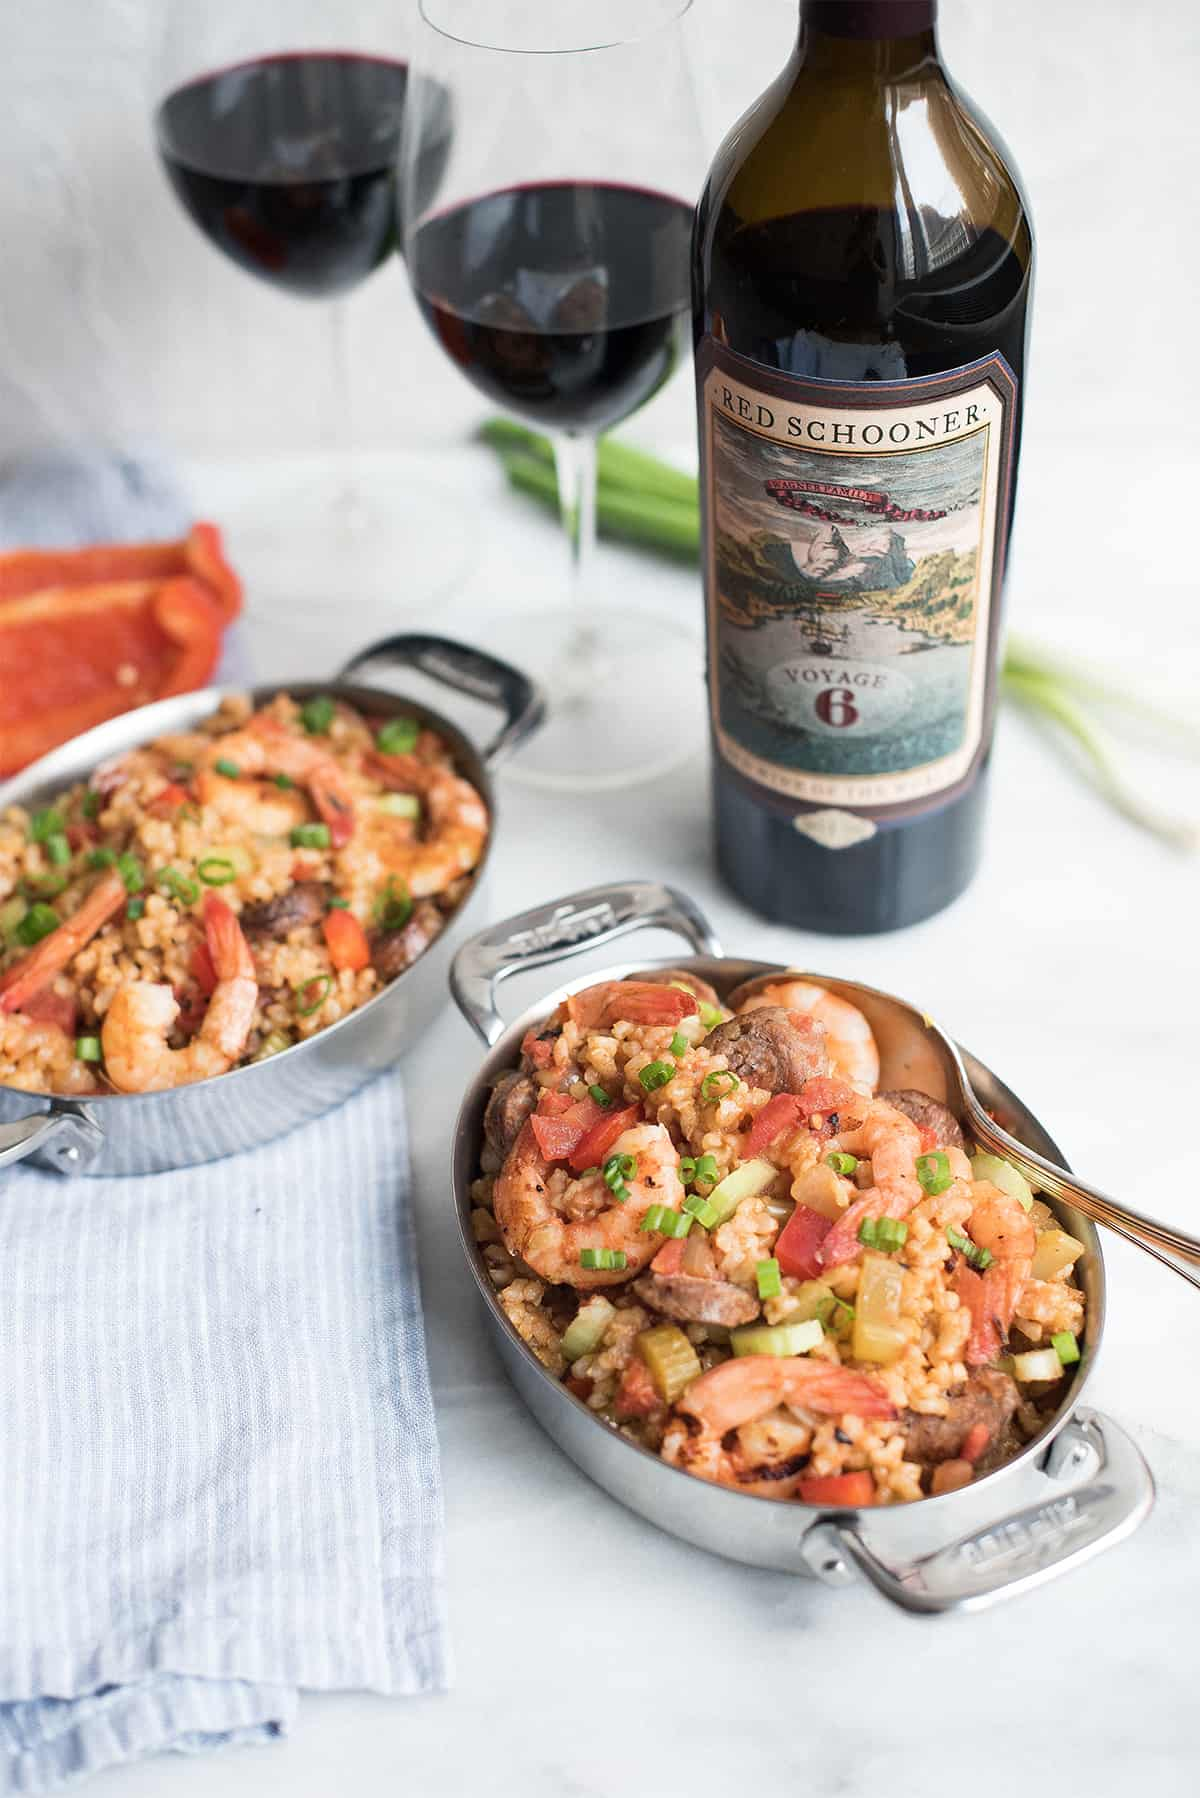 serving pan of creole style shrimp jambalaya with red schooner wine